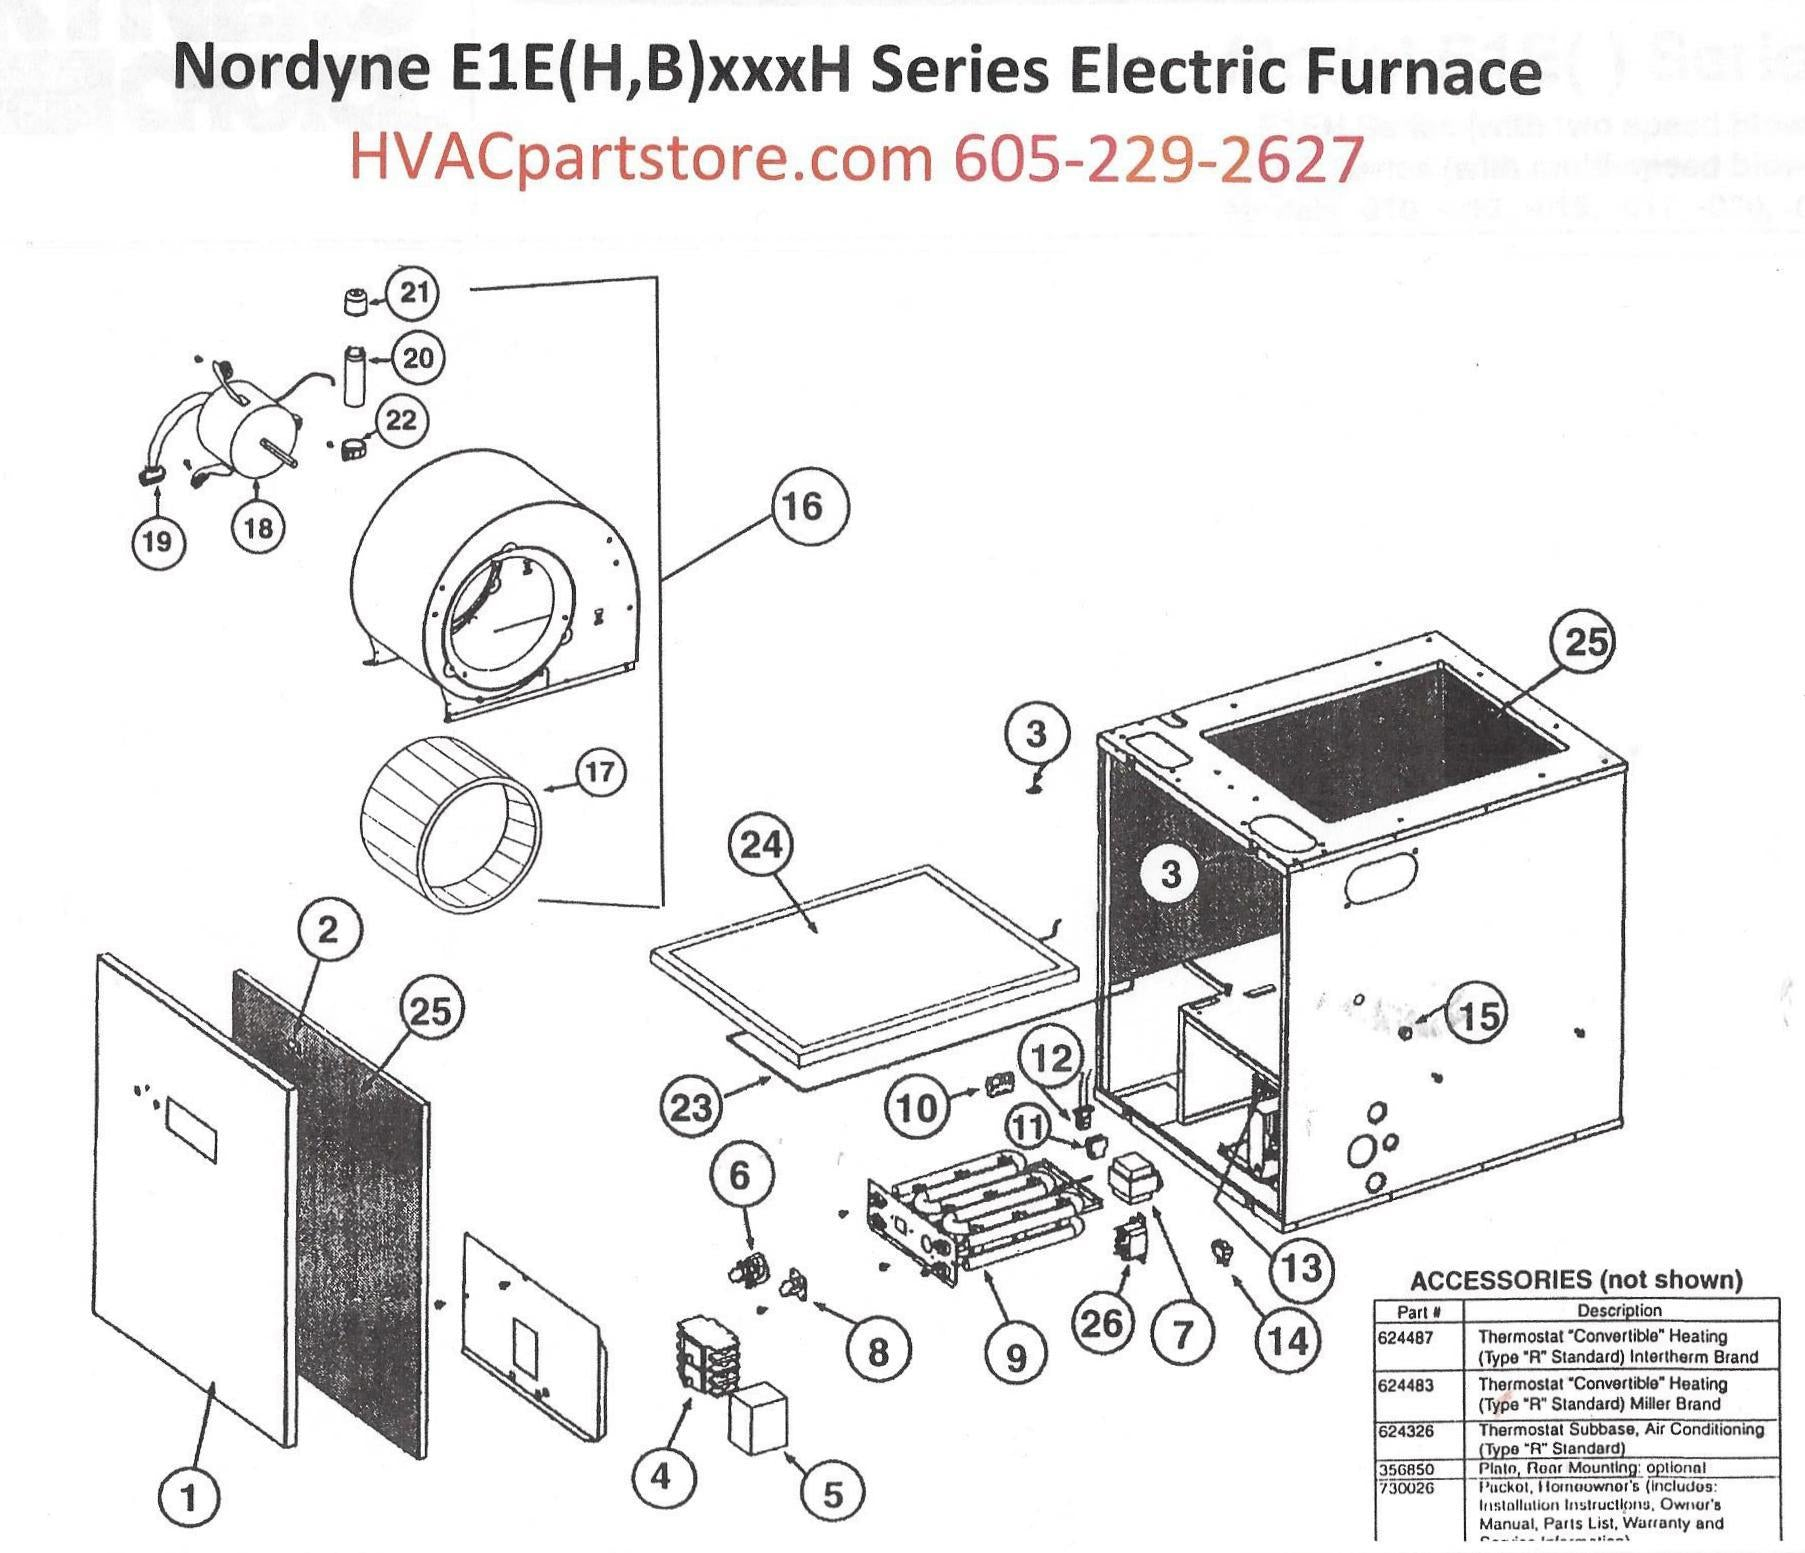 Nordyne Electric Blower Wiring Diagram Guide And Troubleshooting Tappan Heat Pump E1eh020h Furnace Parts Hvacpartstore Rh Myshopify Com Air Conditioner